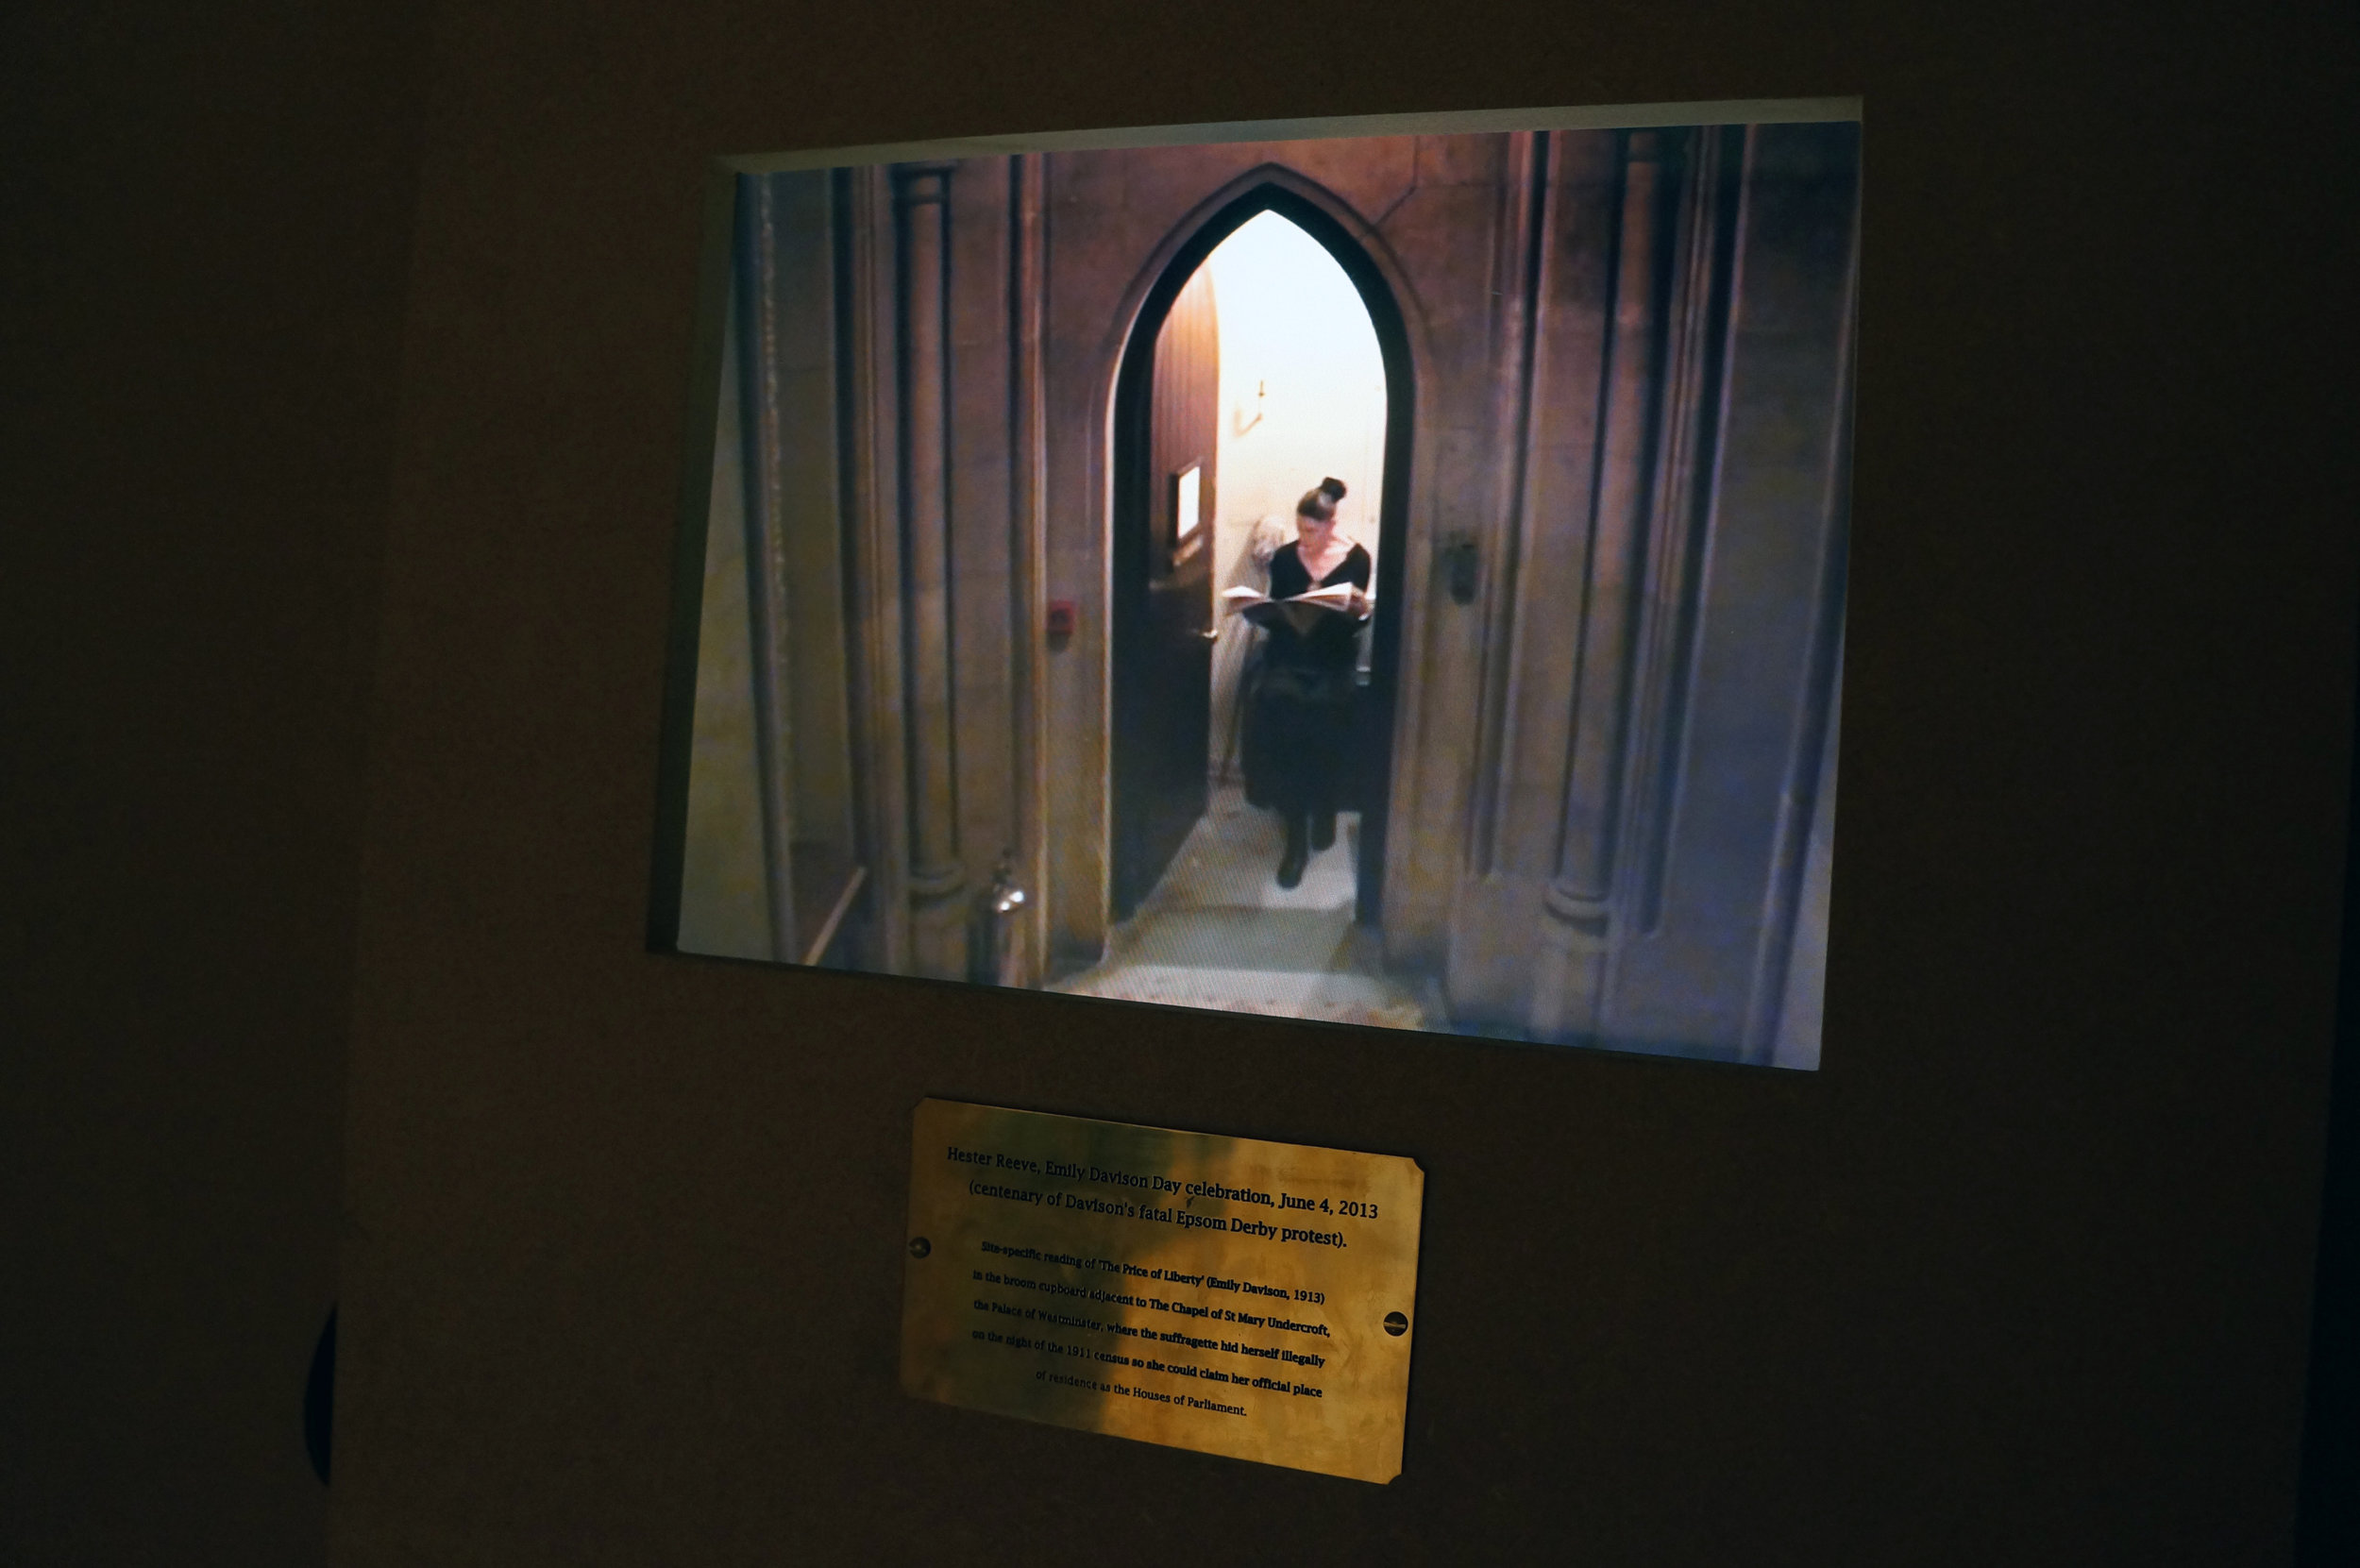 Includes documentation of live art action (2013) - reading out loud Emily Davison's text 'The price of Liberty' in the broom cupboard in the Houses of Parliament where she hid overnight on the date of the 1911 census so she could consequently claim the House of Commons as her place of residence. (With special permission of Black Rod to mark the 100 year anniversary of the suffragette's death at the Epsom Derby).